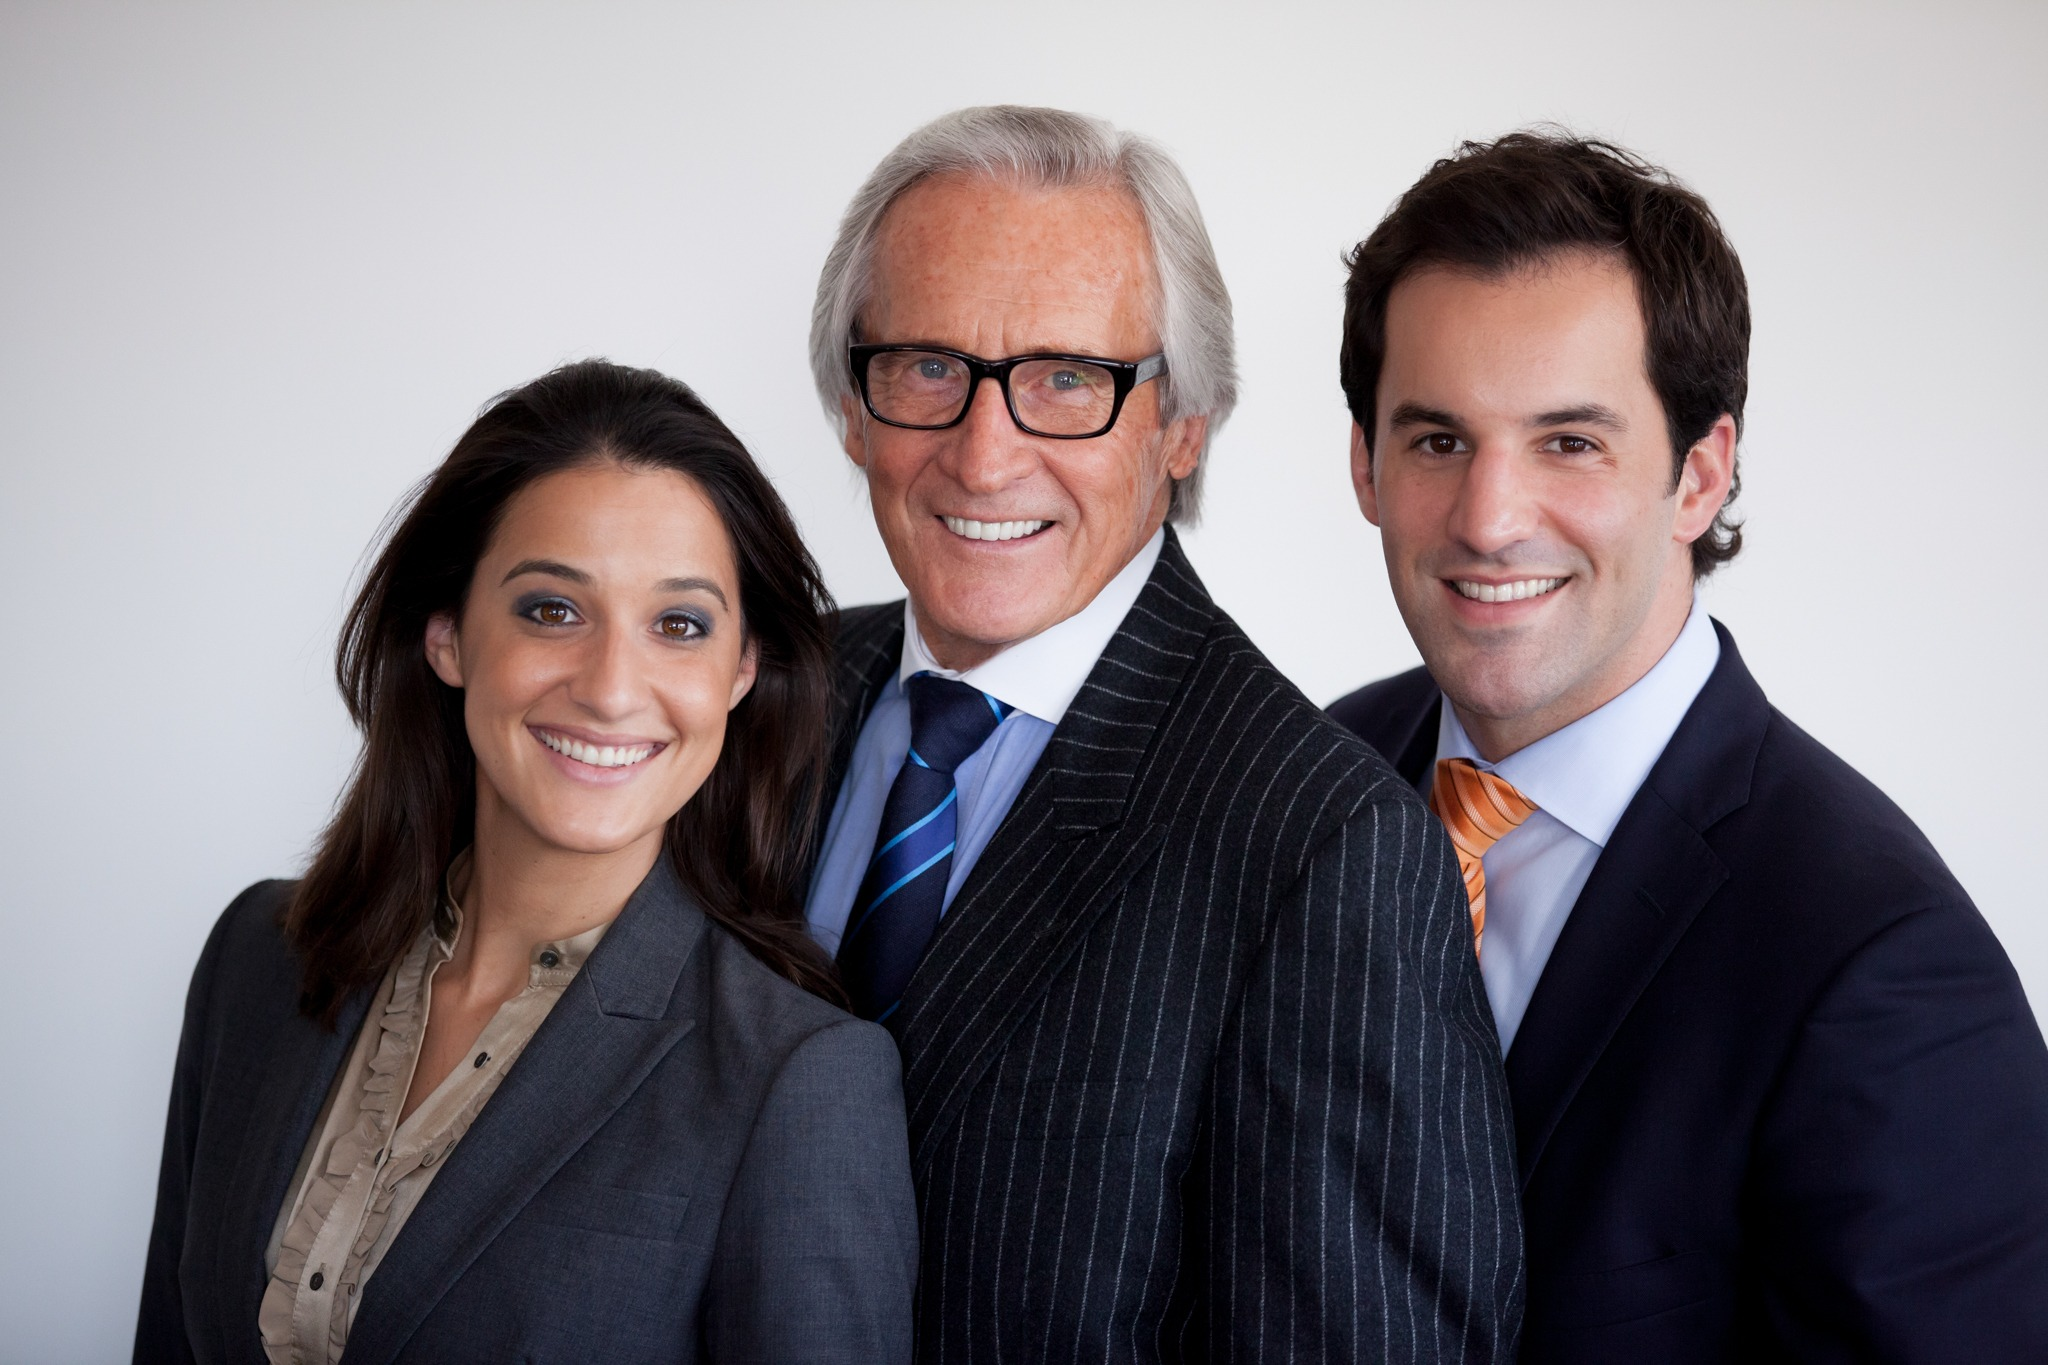 Schlapprizzi Attorneys at Law